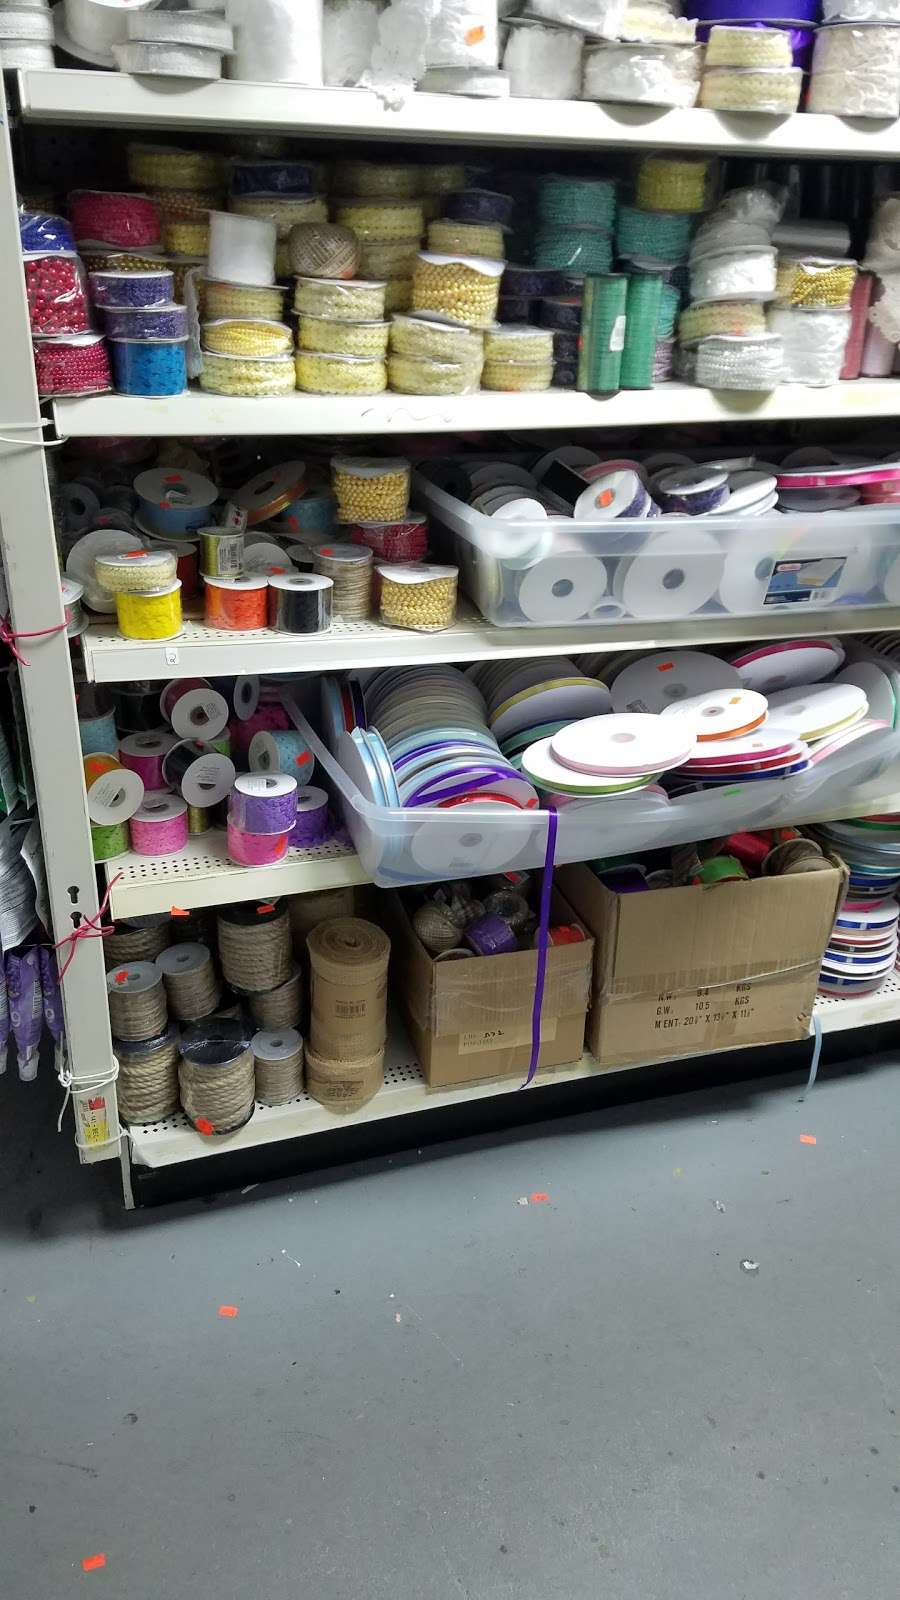 Bronx Party Center - home goods store  | Photo 1 of 4 | Address: 3000 Third Ave, Bronx, NY 10455, USA | Phone: (718) 742-7655